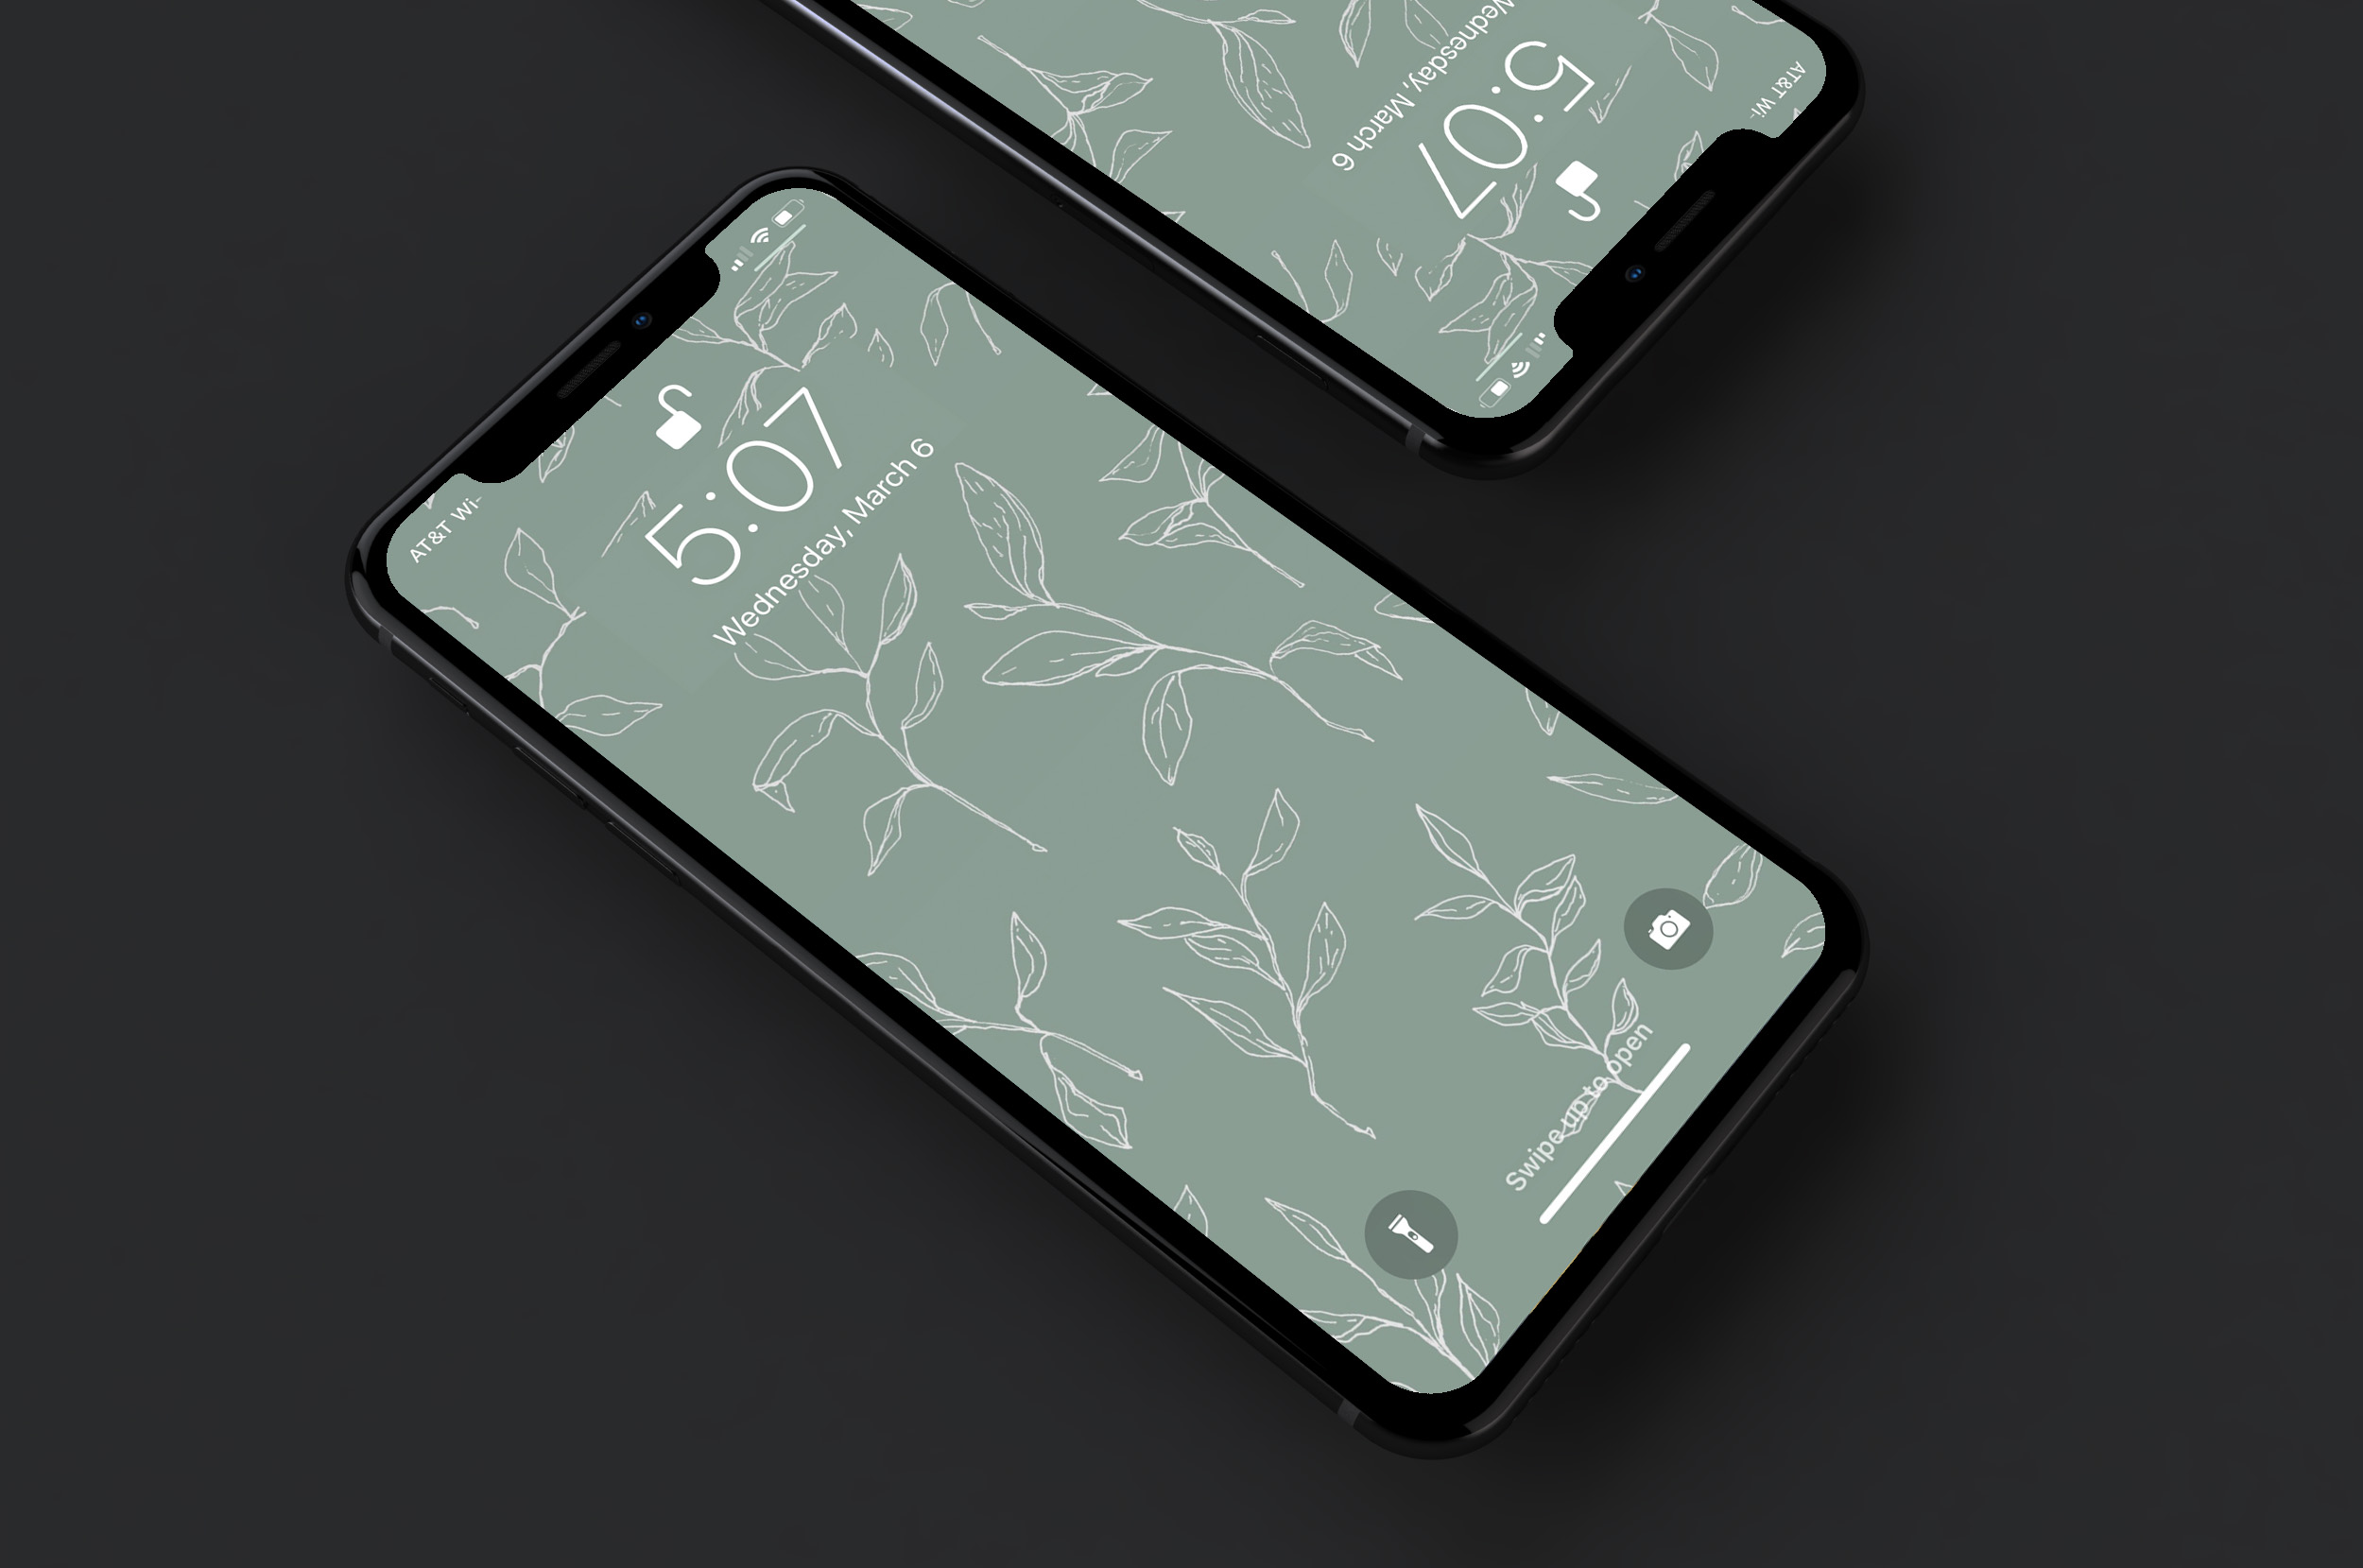 Spring Wallpaper - Hand drawn spring leaves wallpaper with notch for iPhone X + similar devices